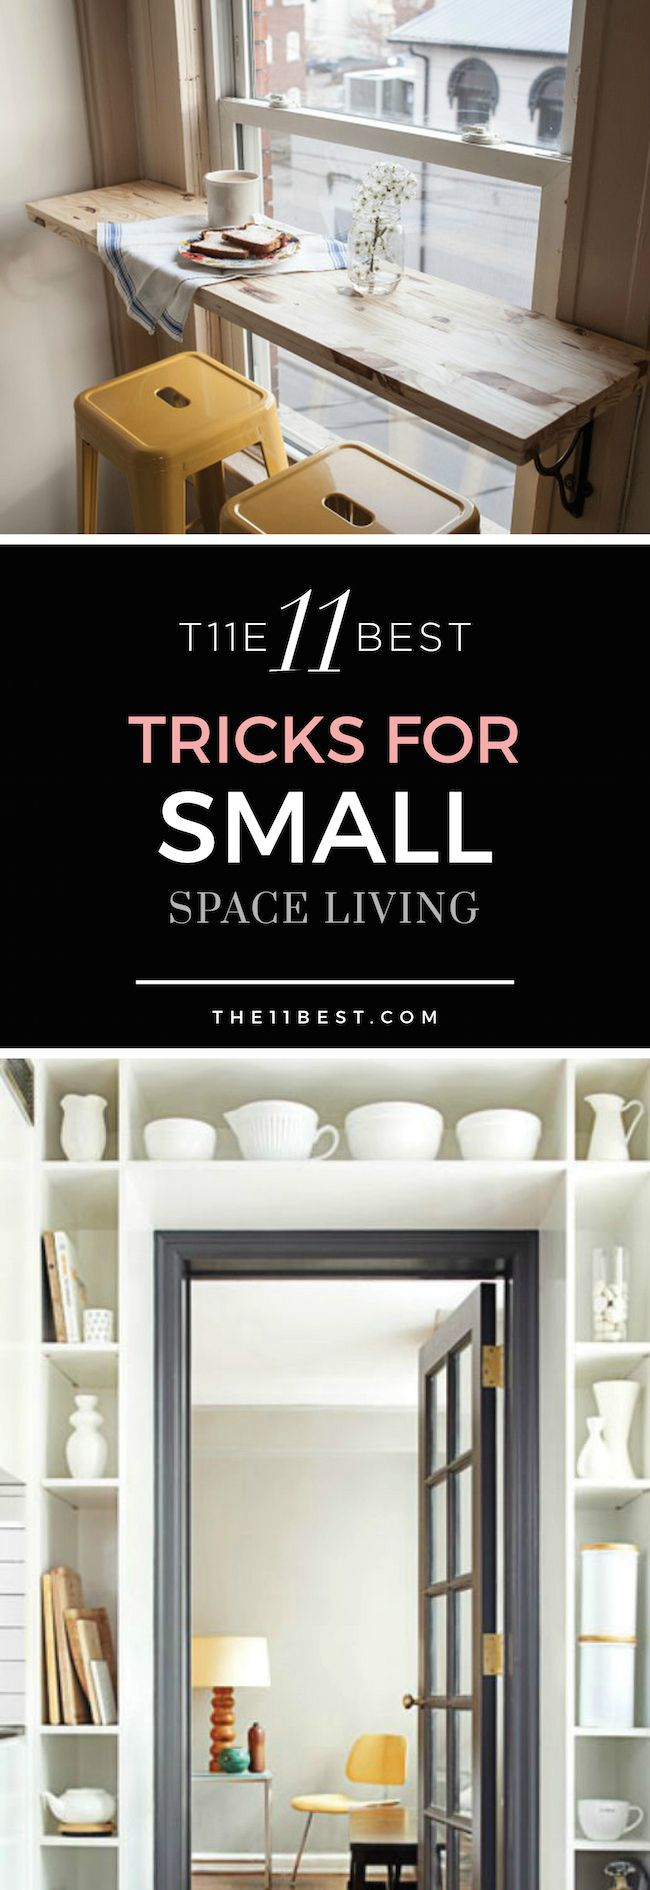 Top 25+ best Small spaces ideas on Pinterest | Kitchen ...